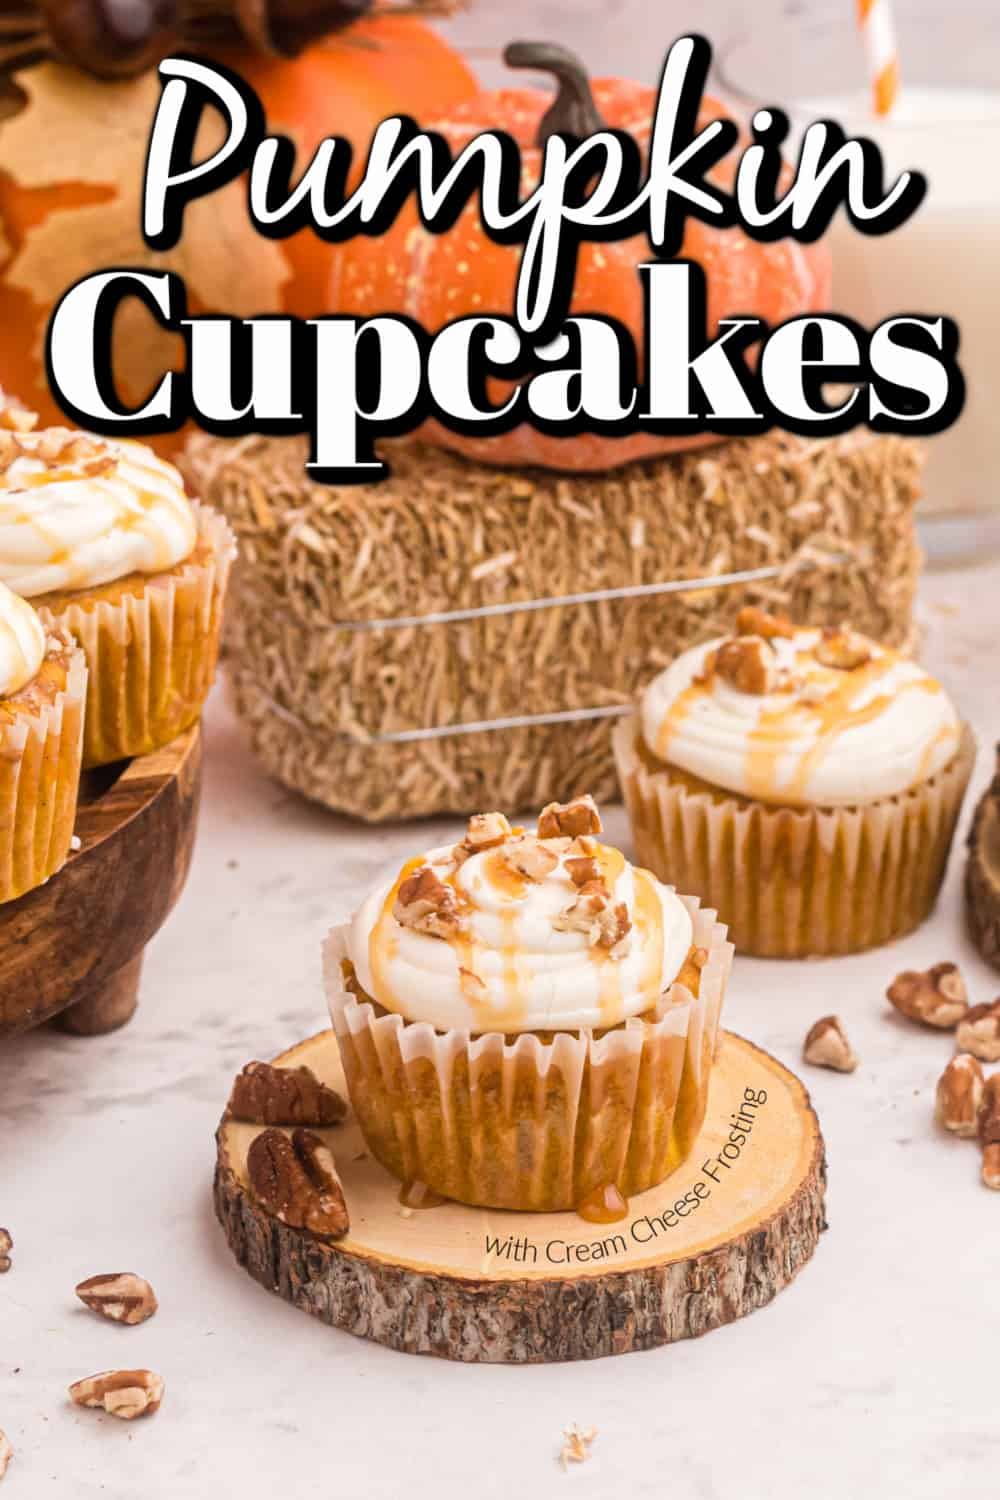 Pumpkin Cupcakes with Cream Cheese Frosting Pin